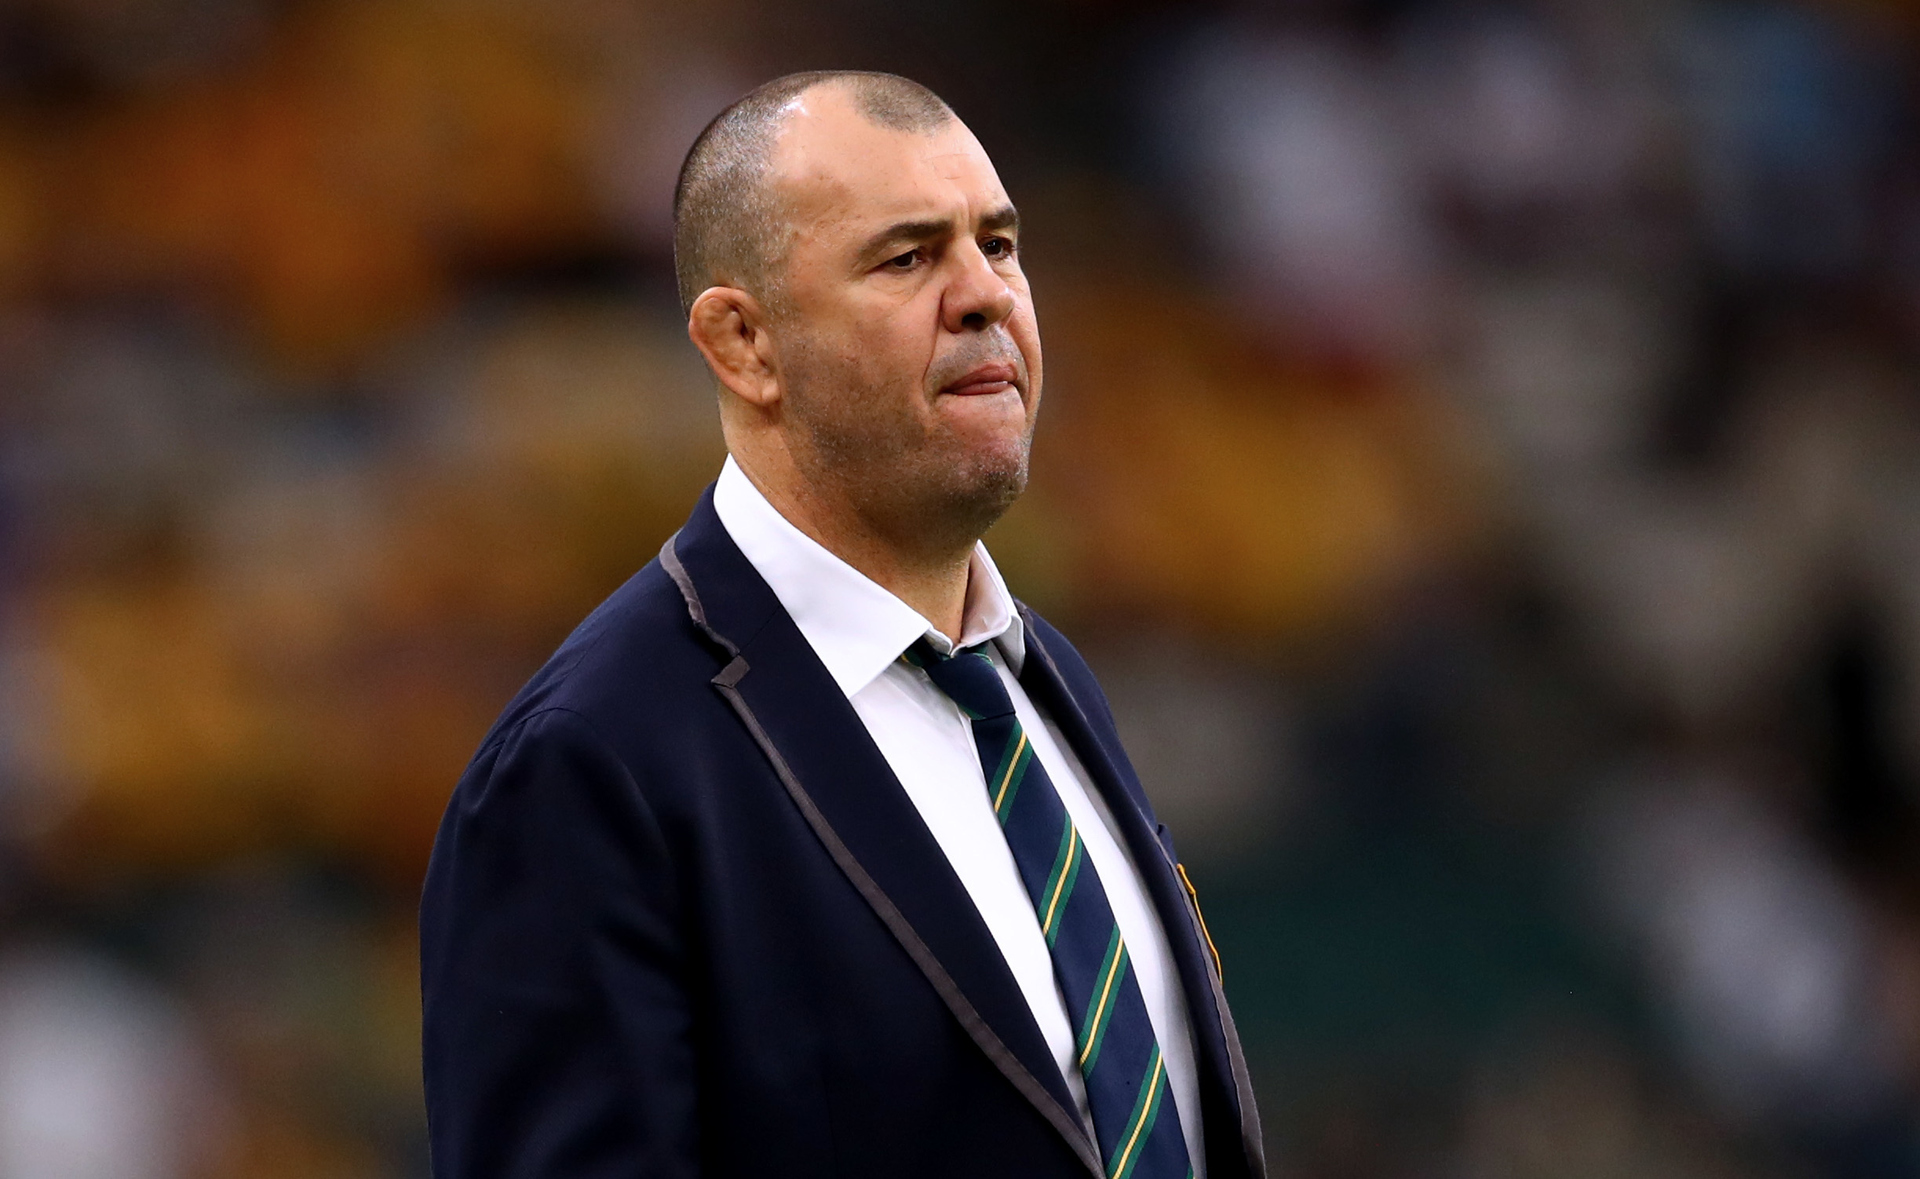 Cheika's brutal final shot at Kiwi boss after quitting